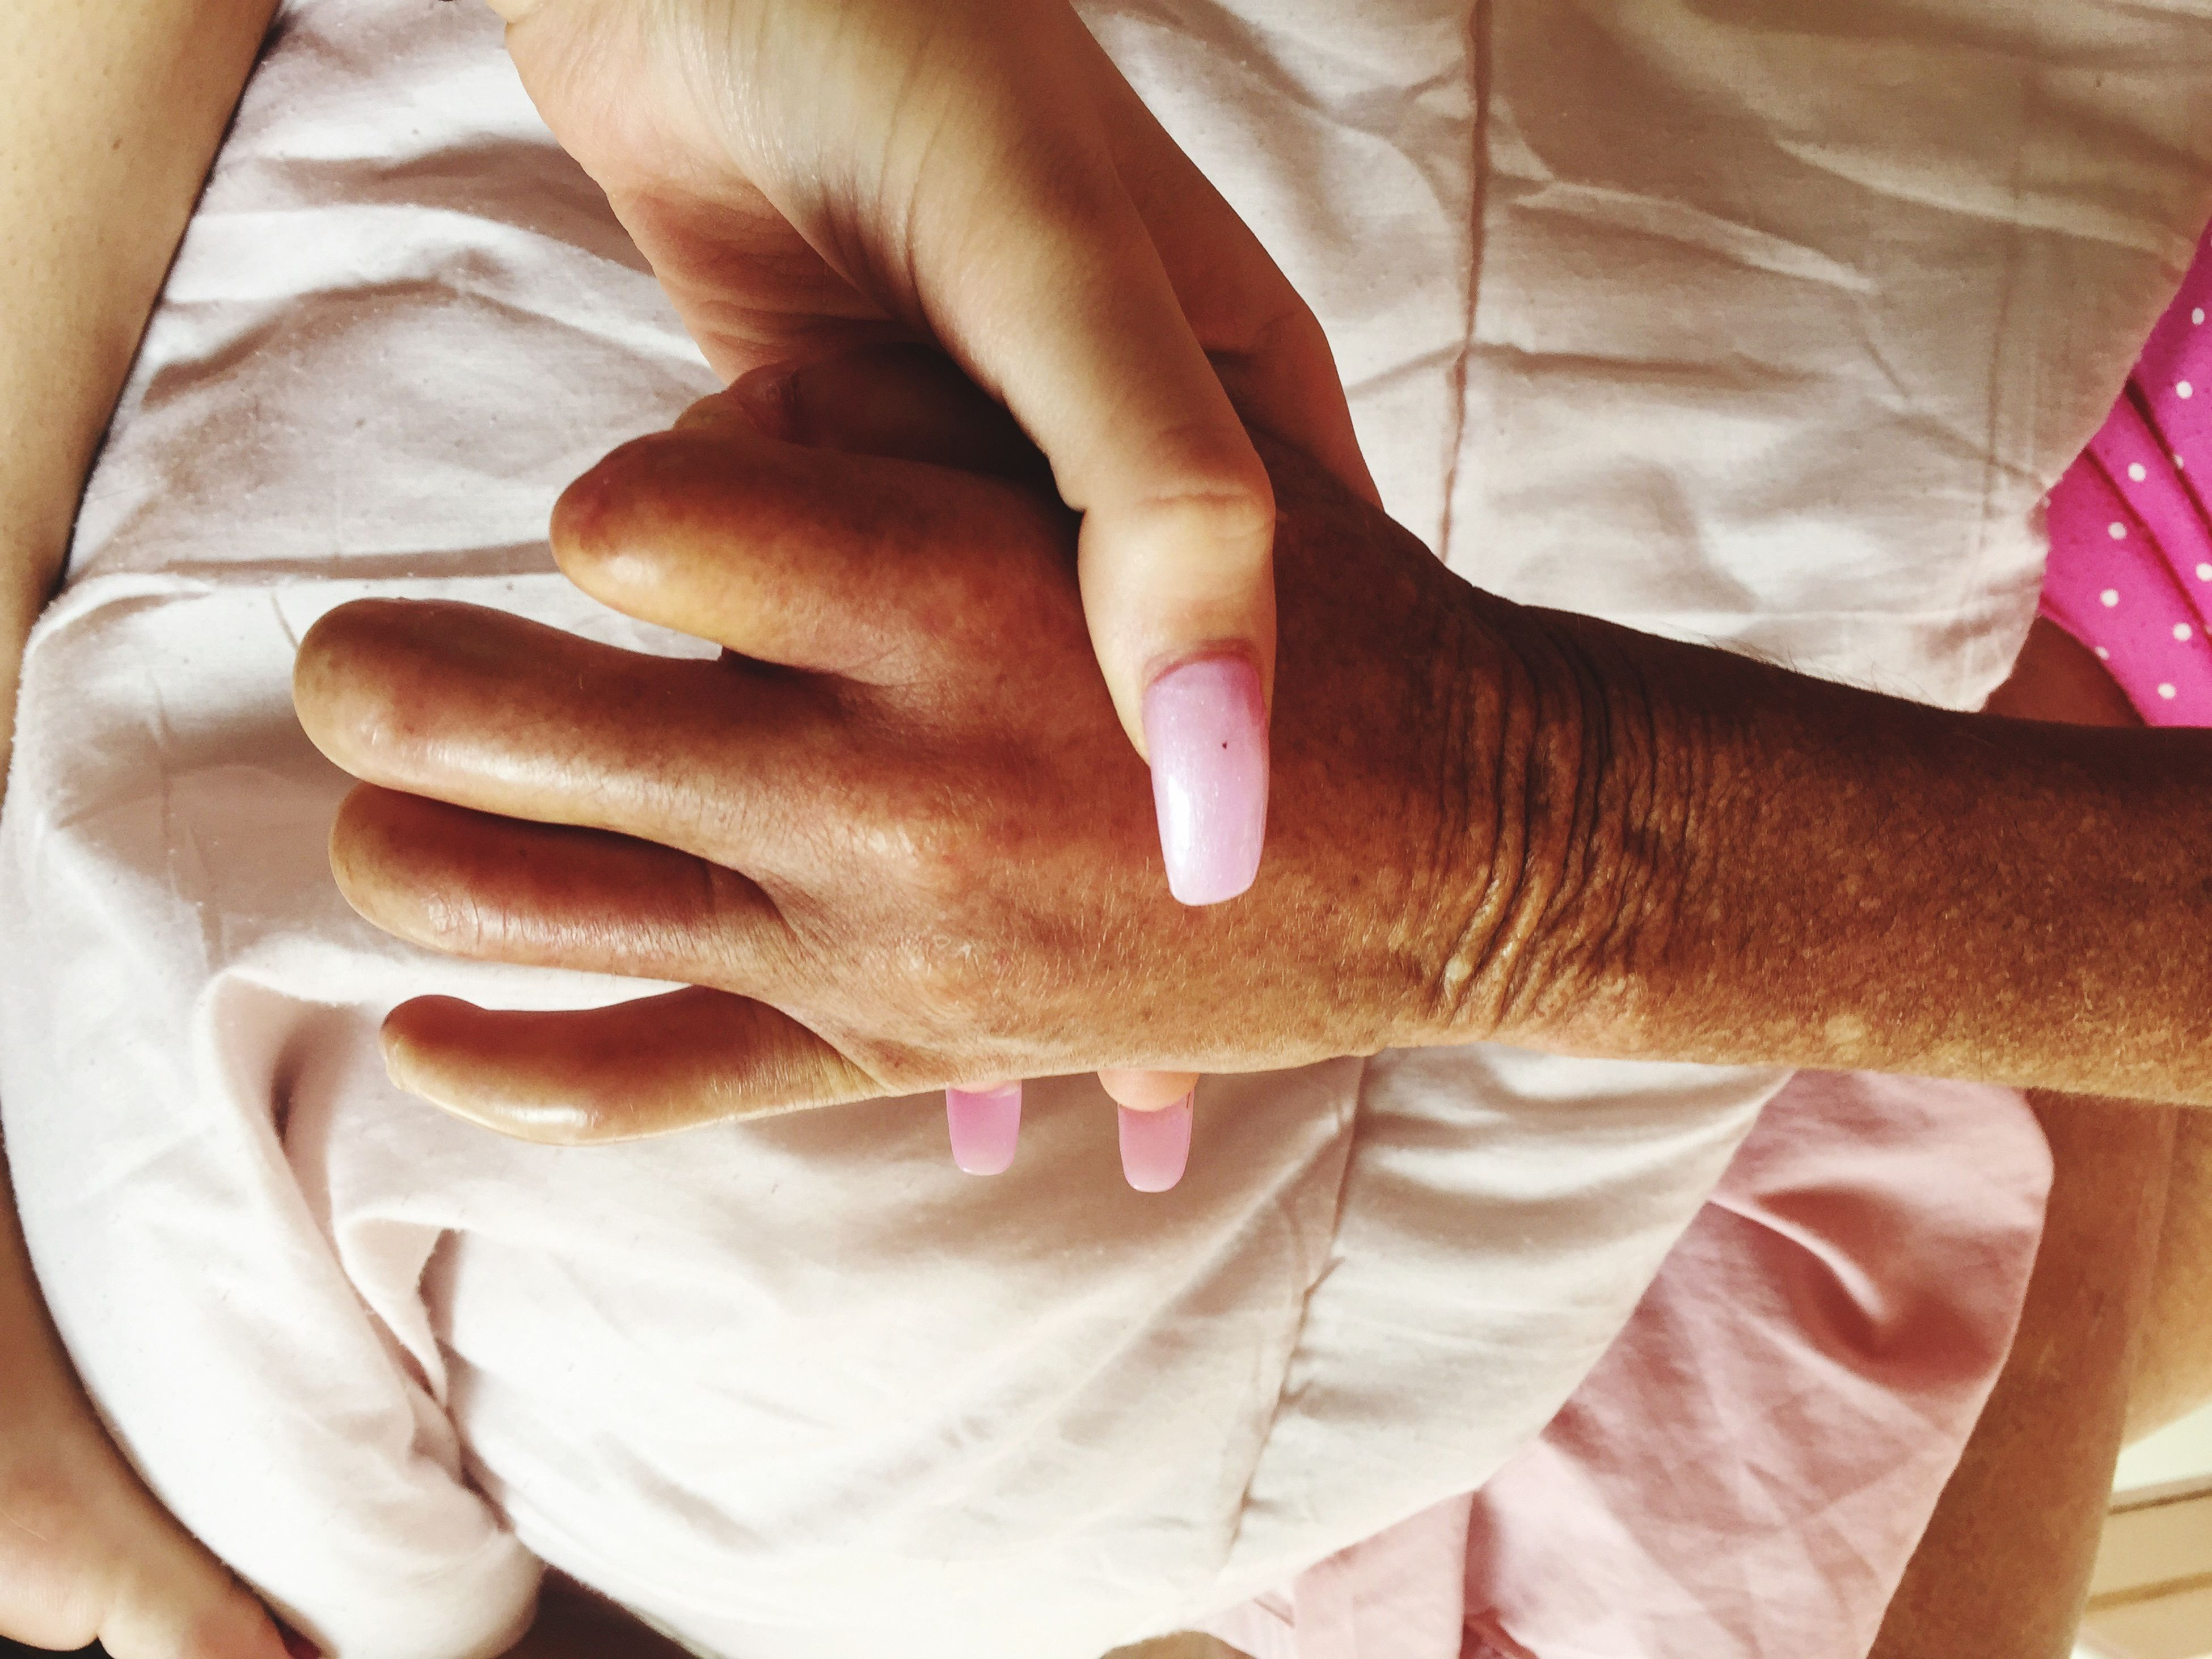 human hand, indoors, real people, close-up, one person, human body part, adults only, day, adult, people